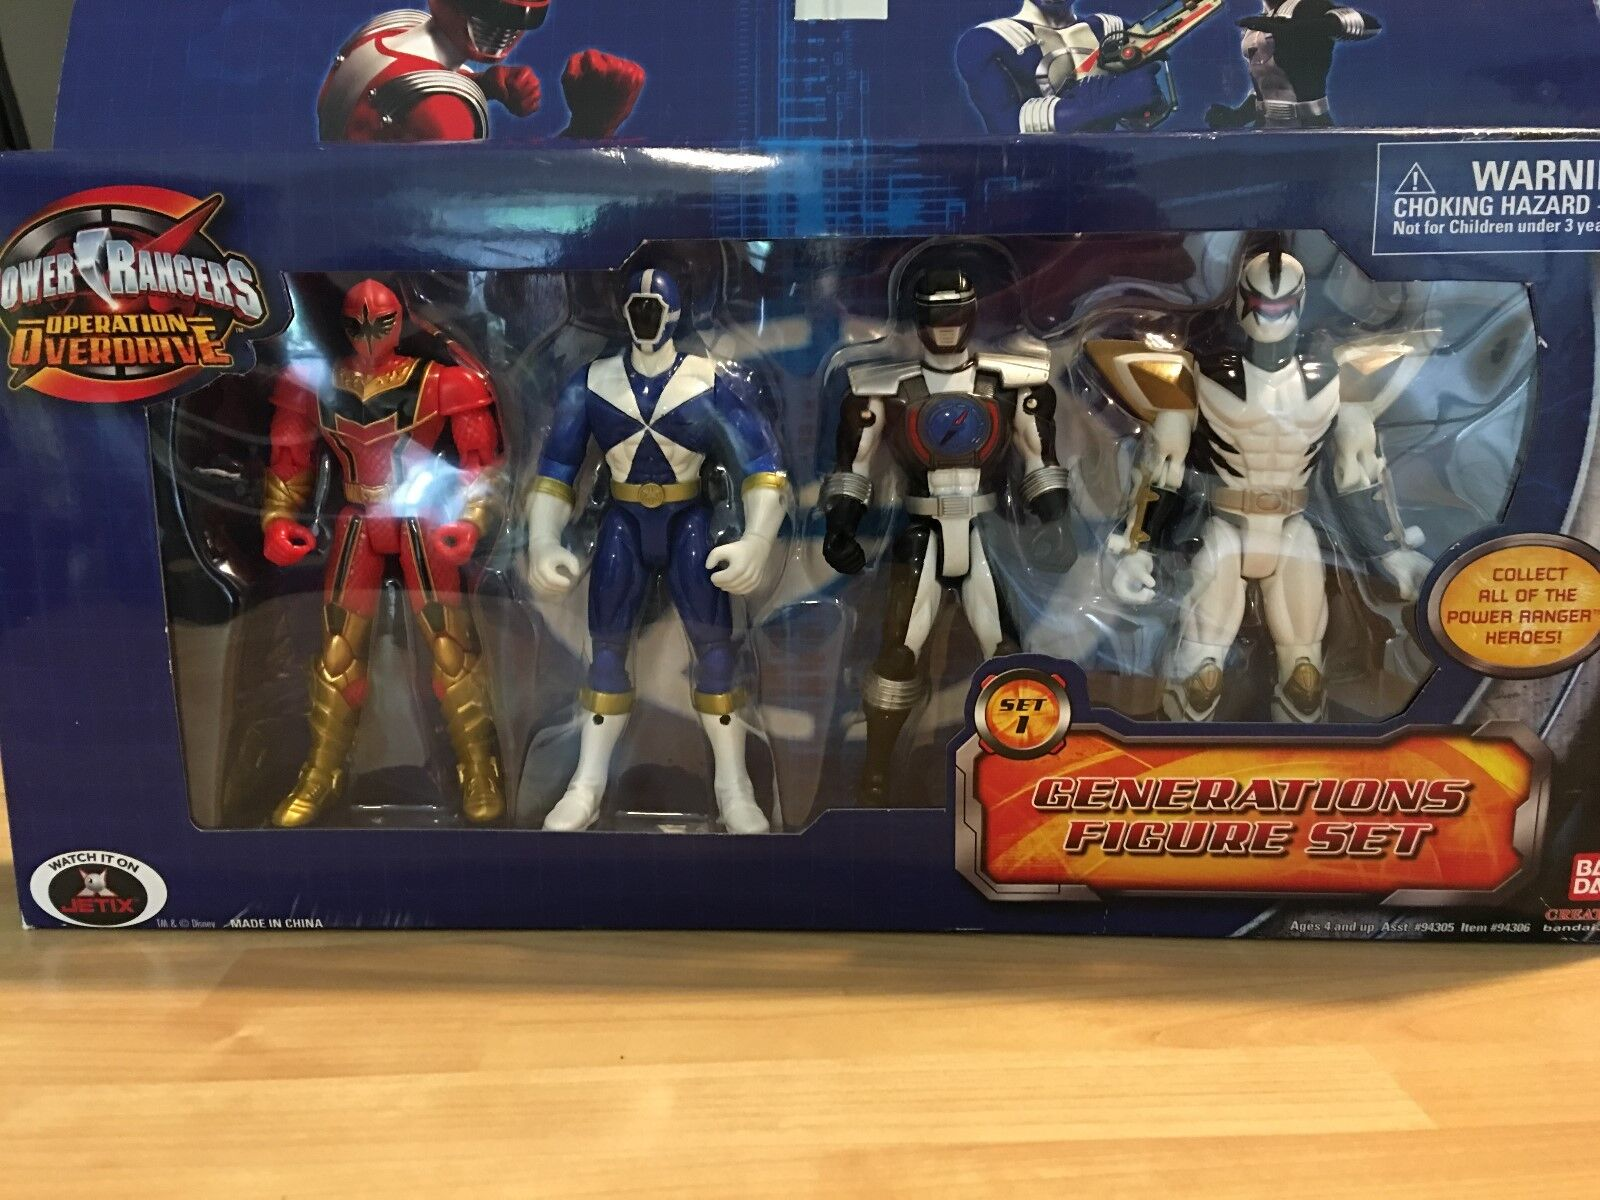 New In Box Power Ranger Operation Overdrive Generation figure Set 1